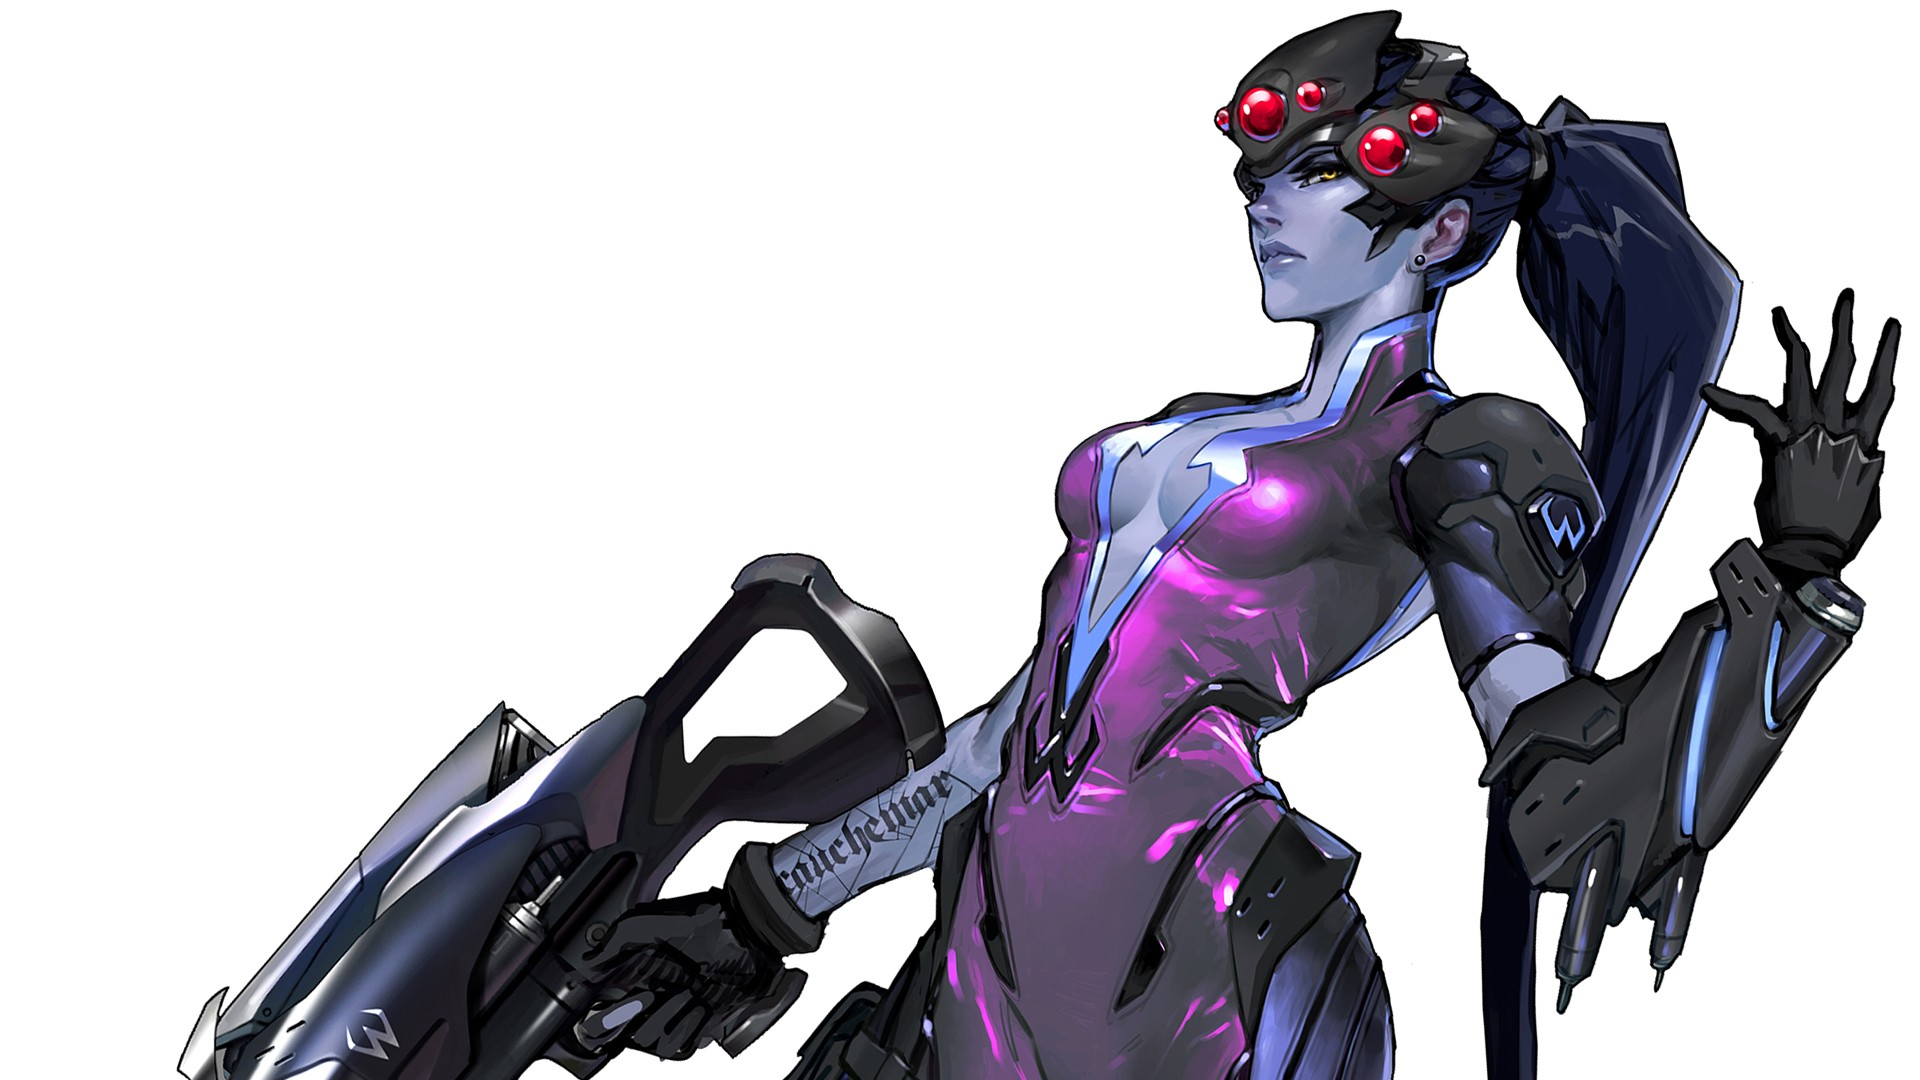 widowmaker overwatch wallpaper 1920x1080 - photo #15